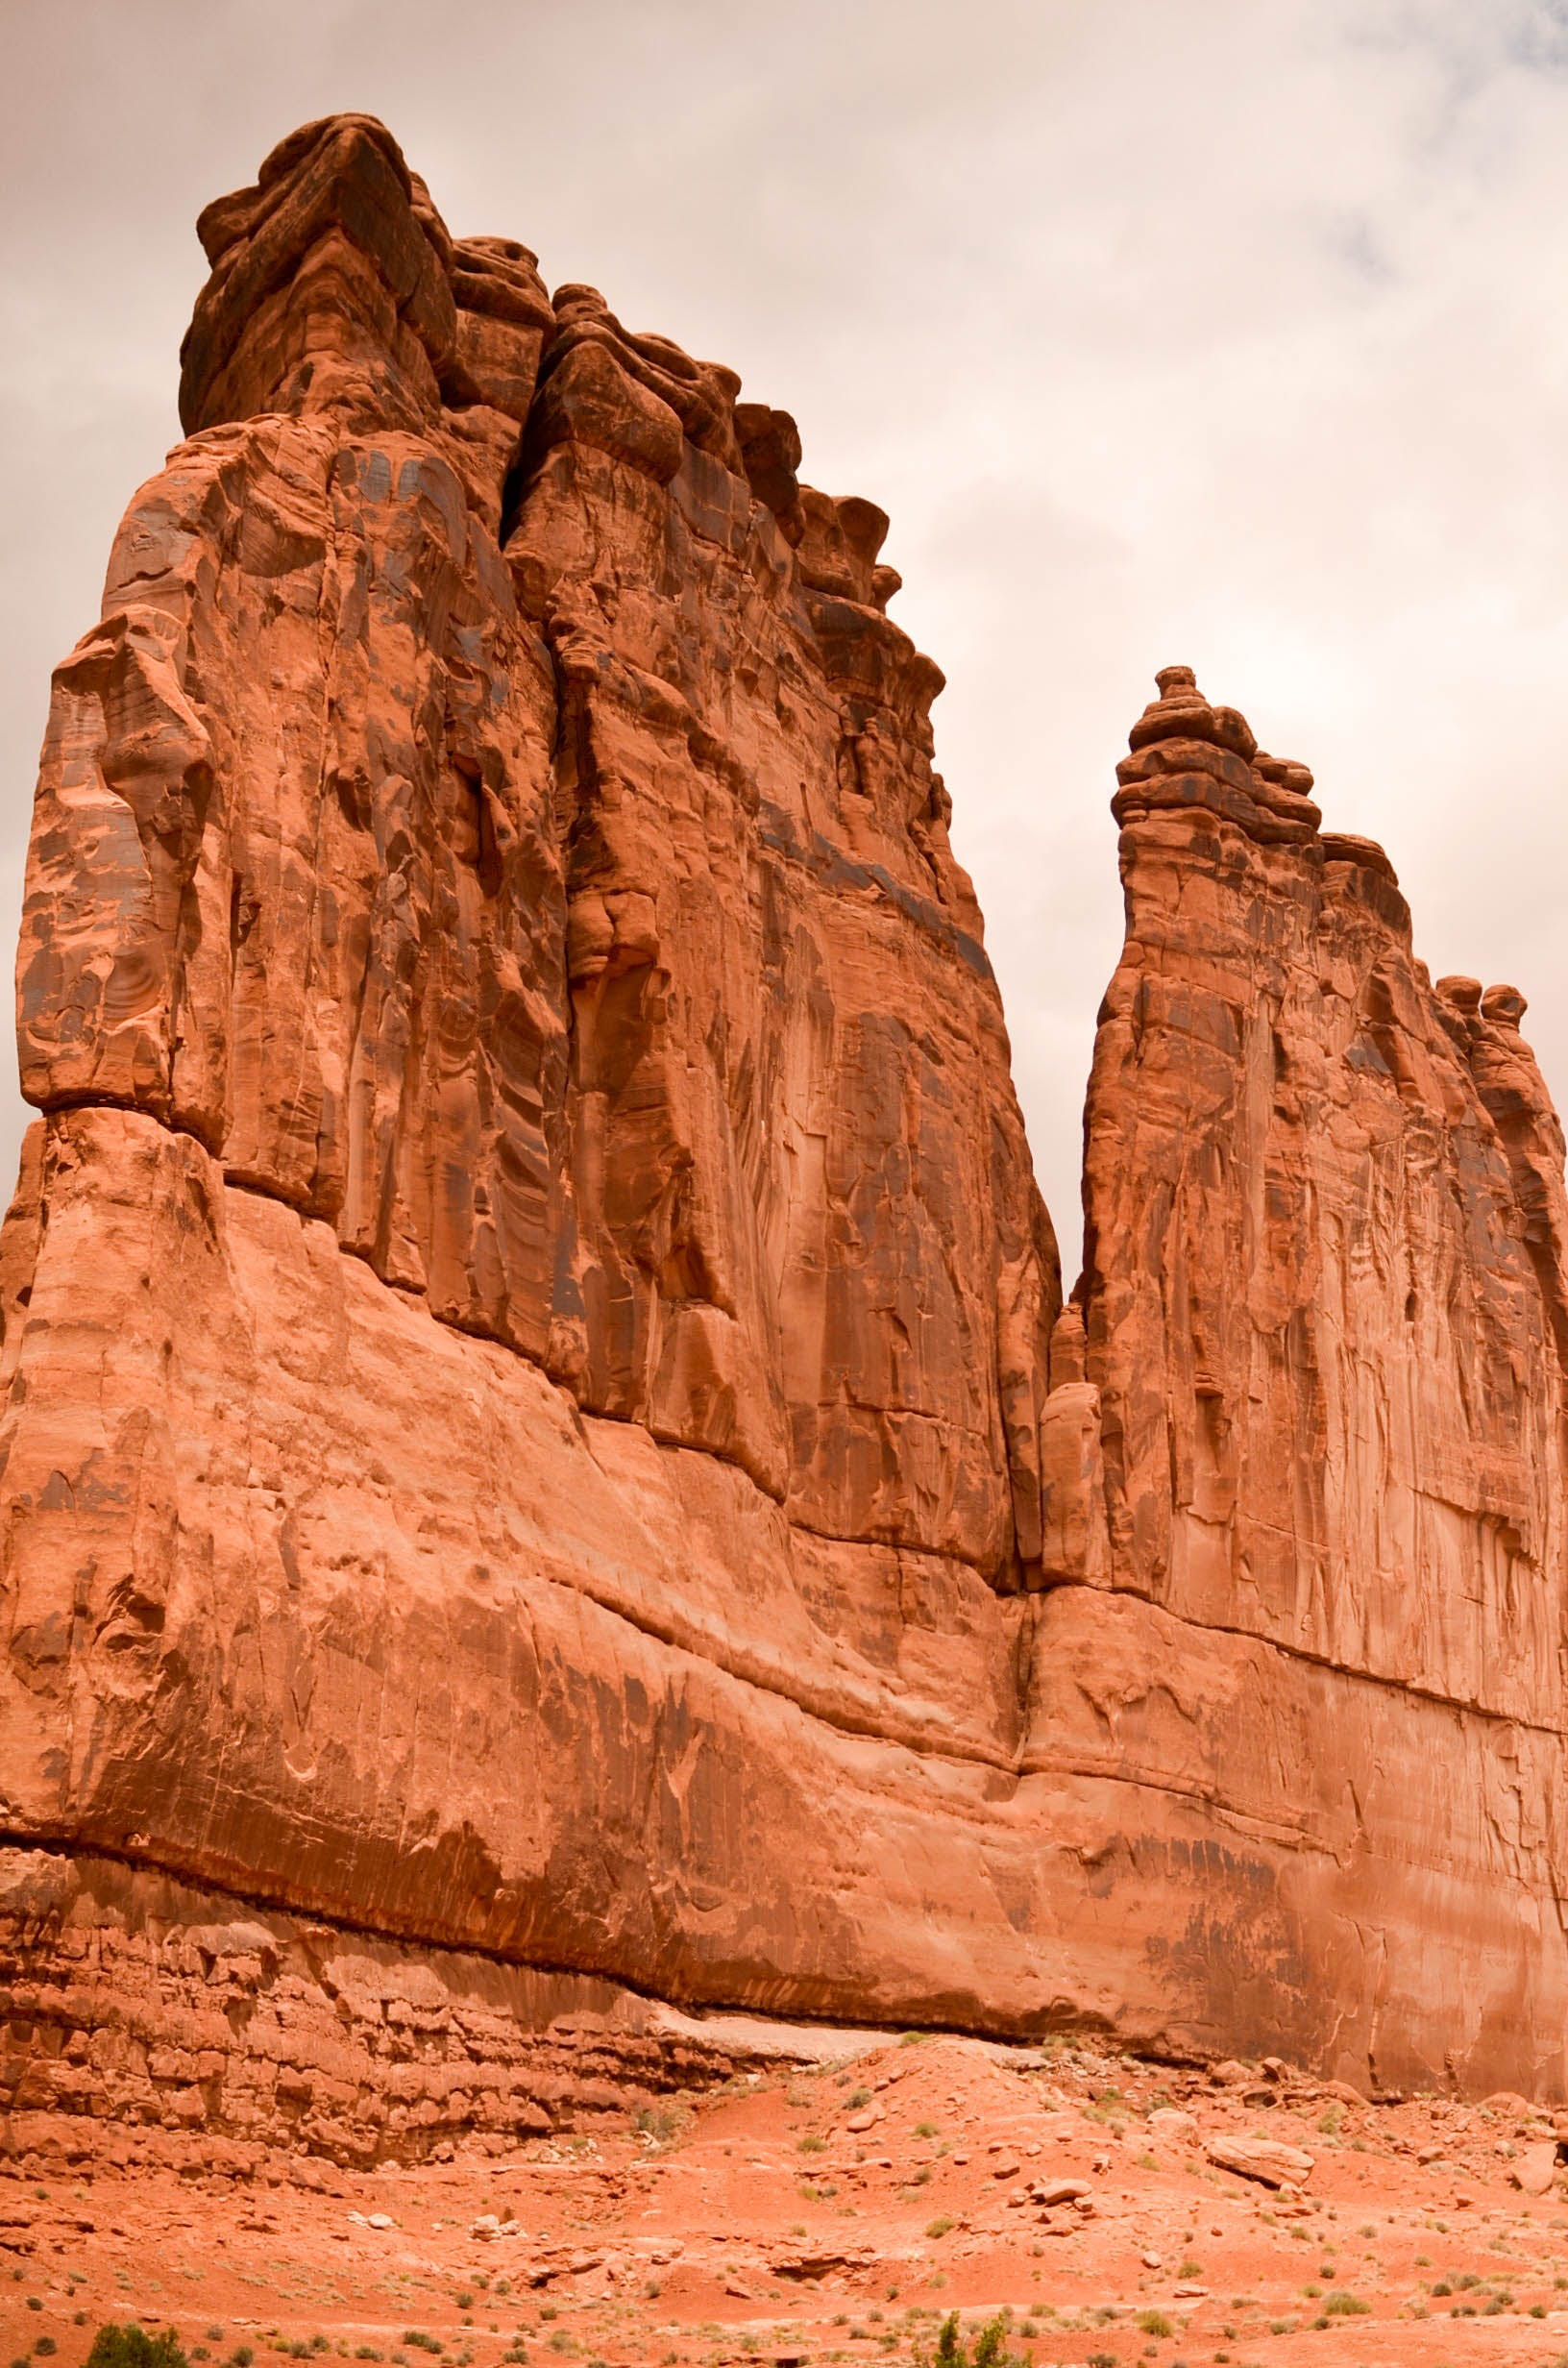 Free stock photo of arches national park, rock, rock formation, traveling